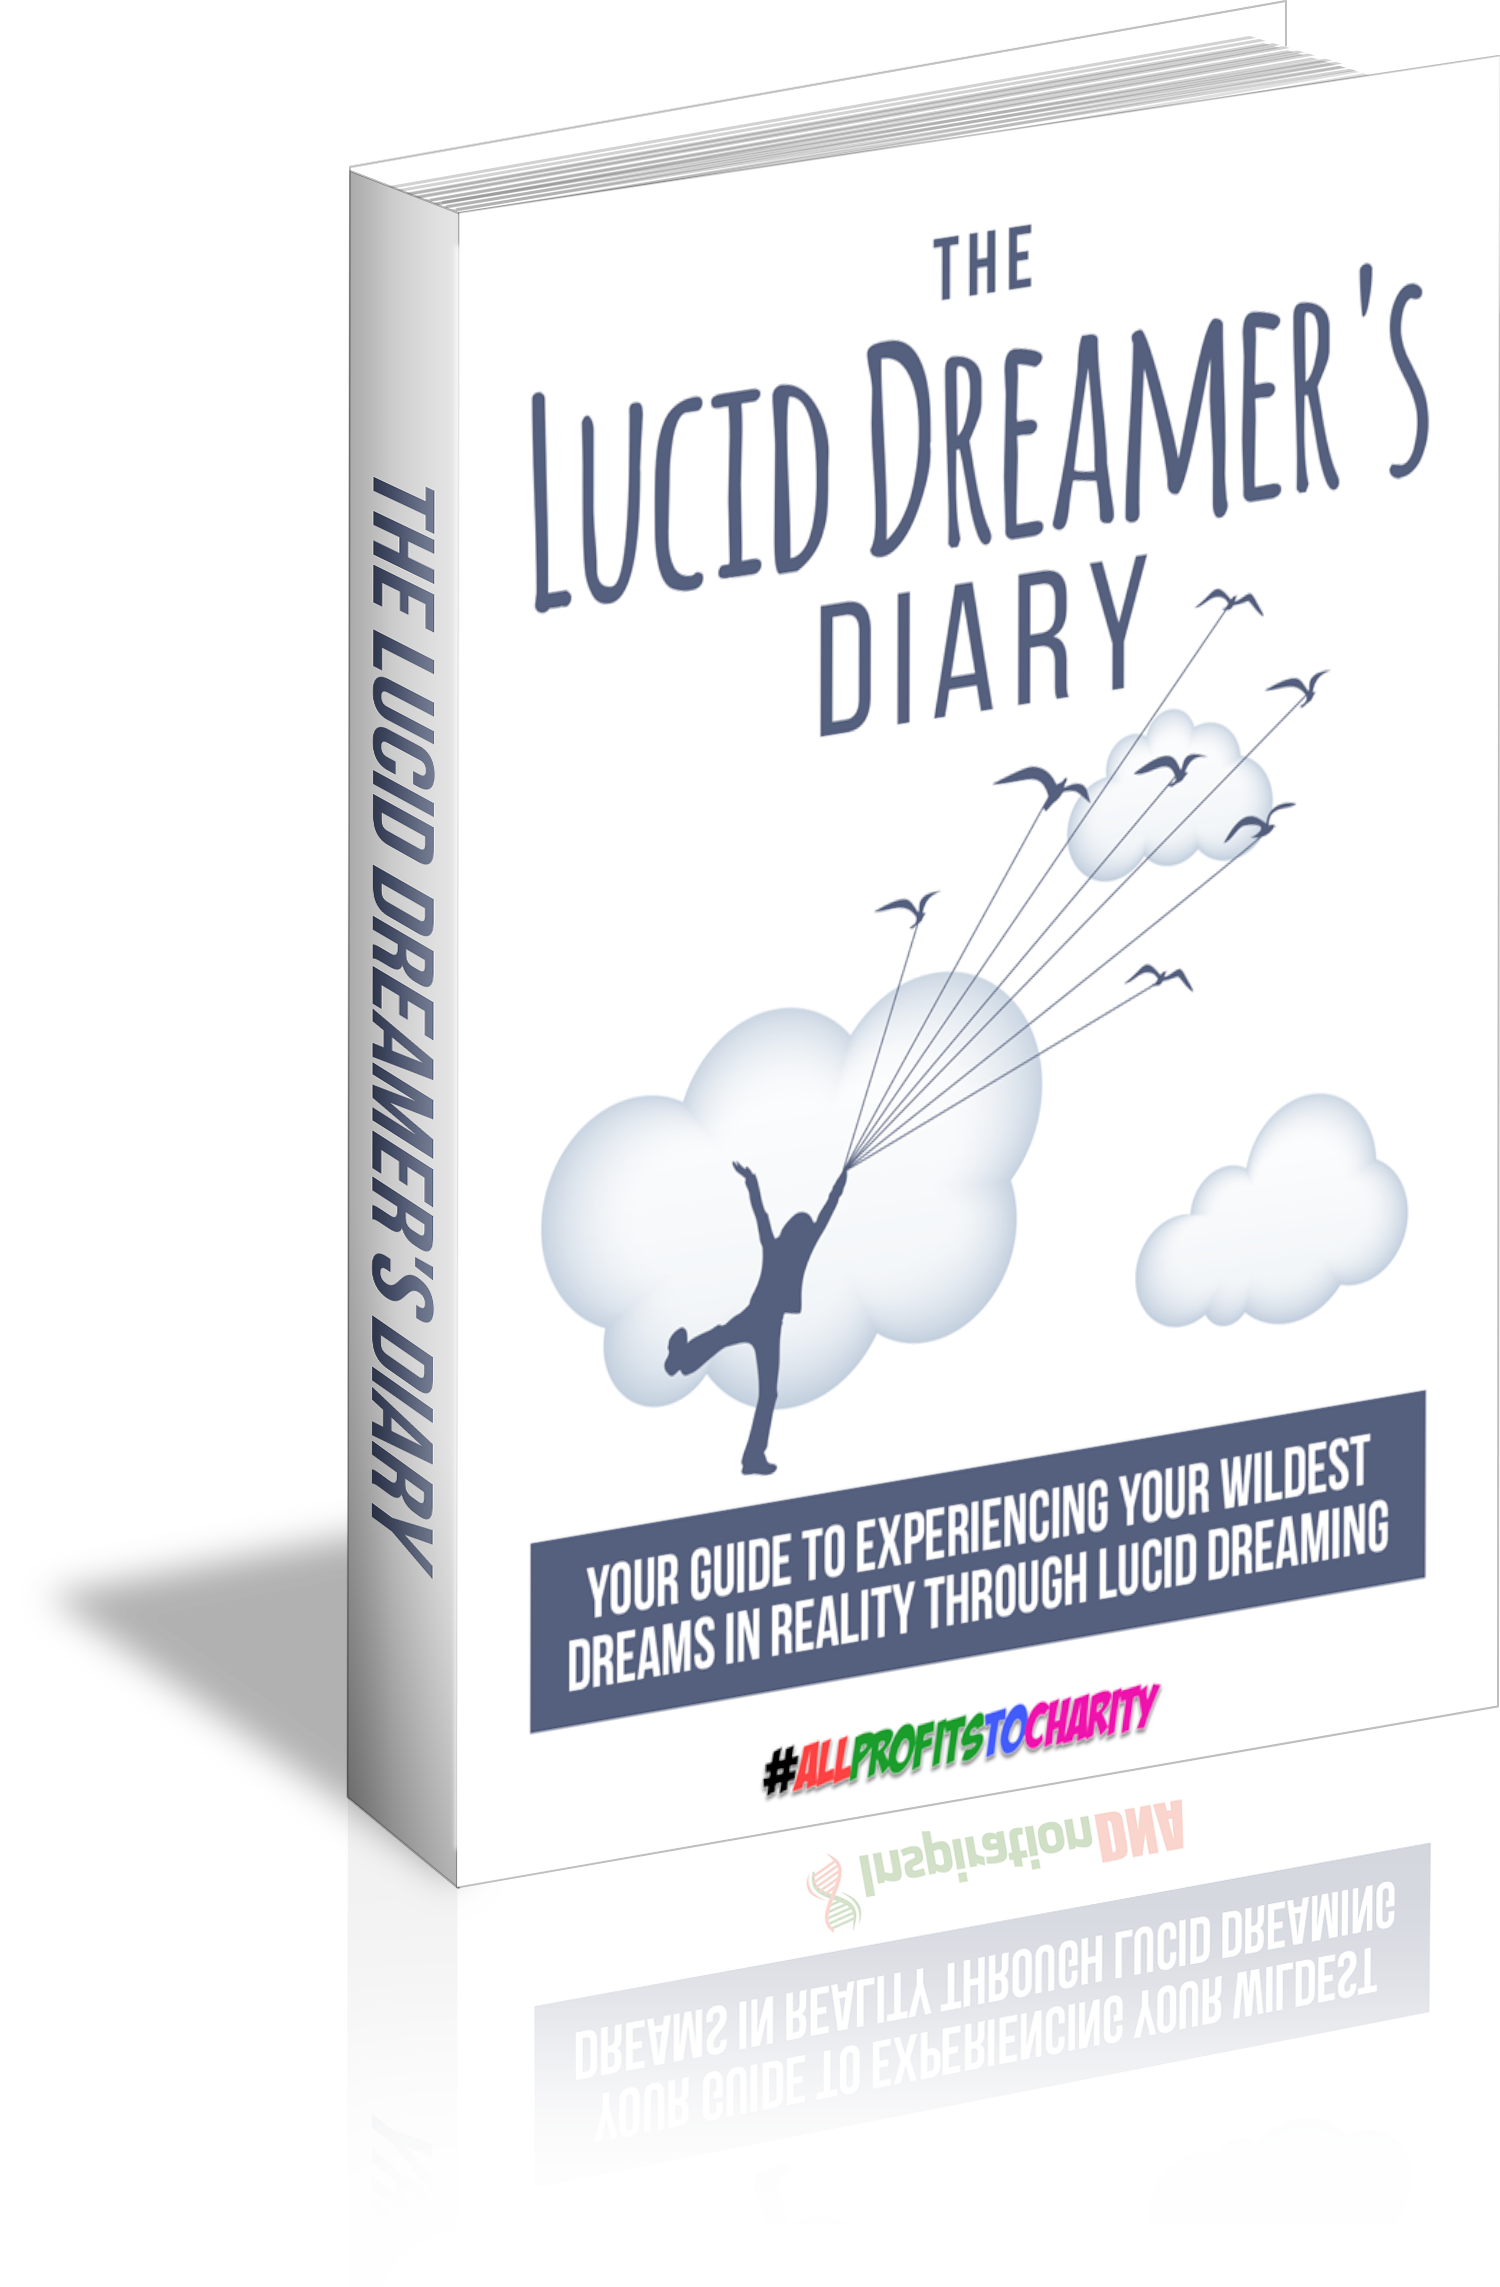 The Lucid Dreamer's Diary cover